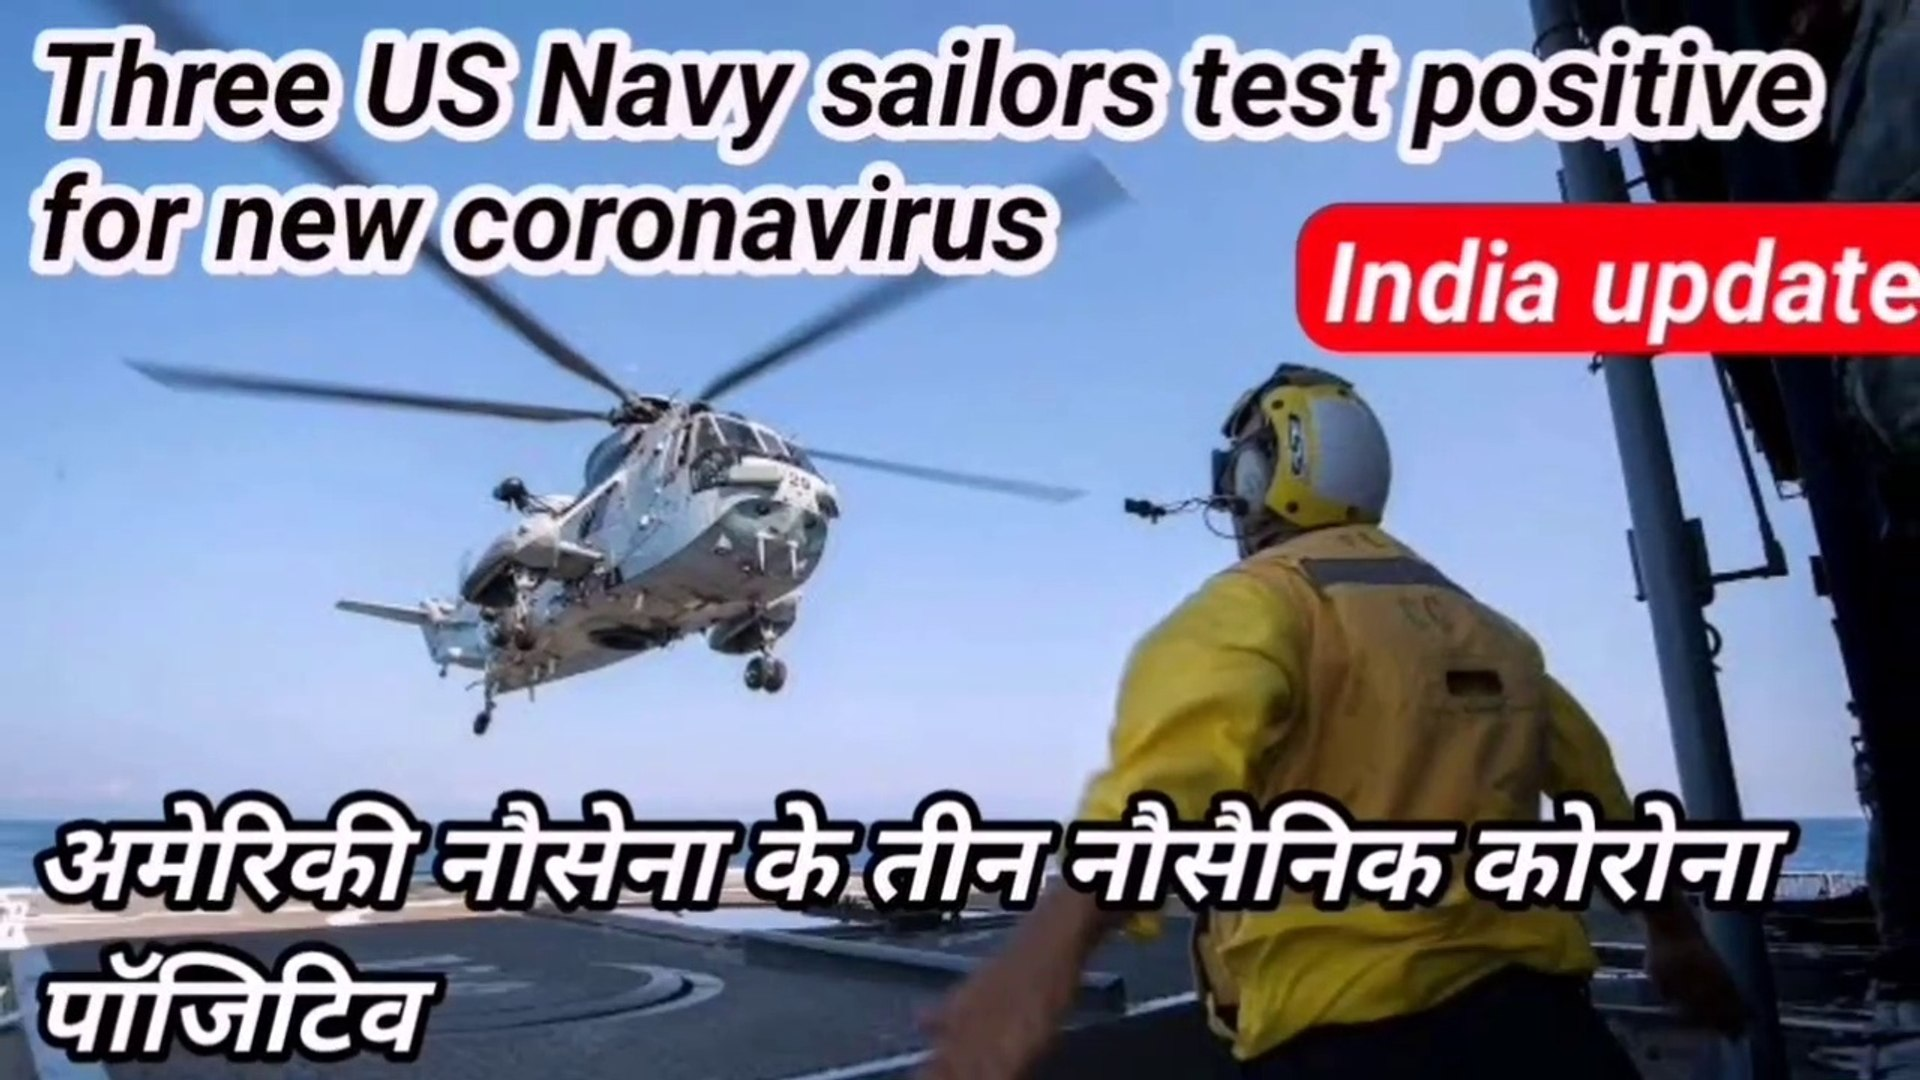 Three US navy sailers test positive for new corona virus  | Corona virus in US navy | India update